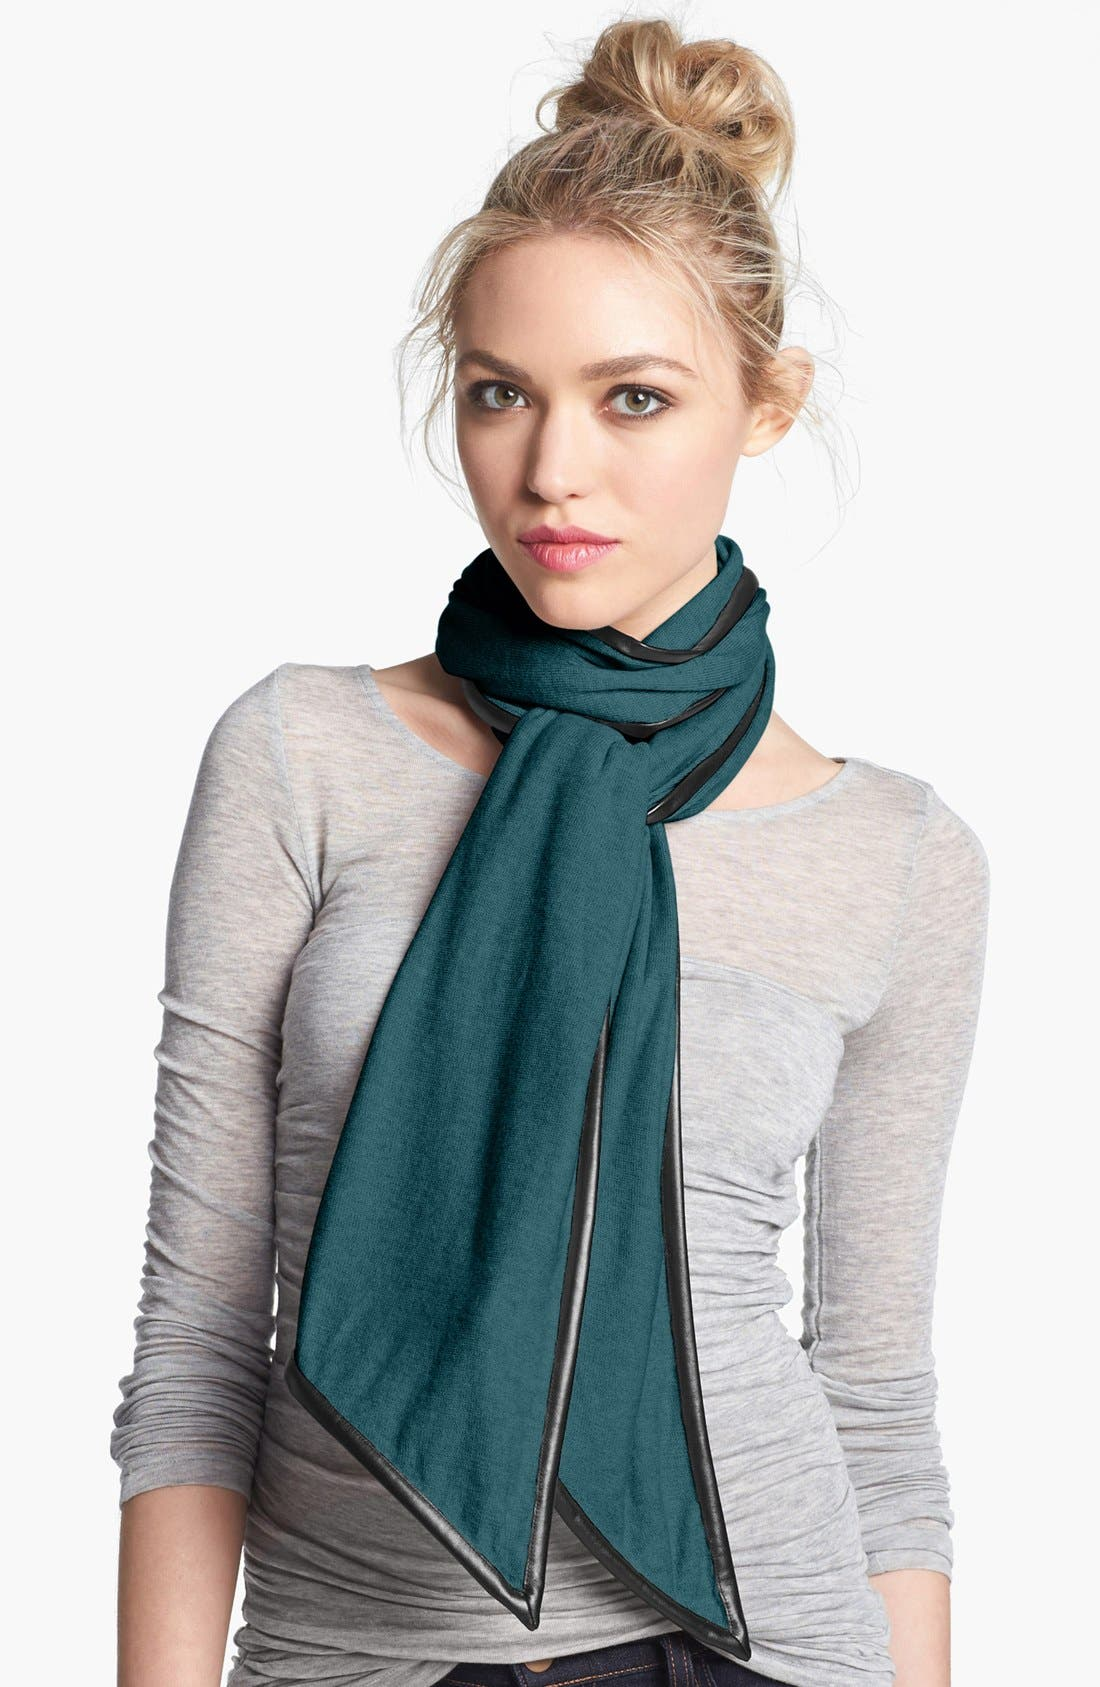 Alternate Image 1 Selected - Nordstrom Faux Leather Trim Scarf